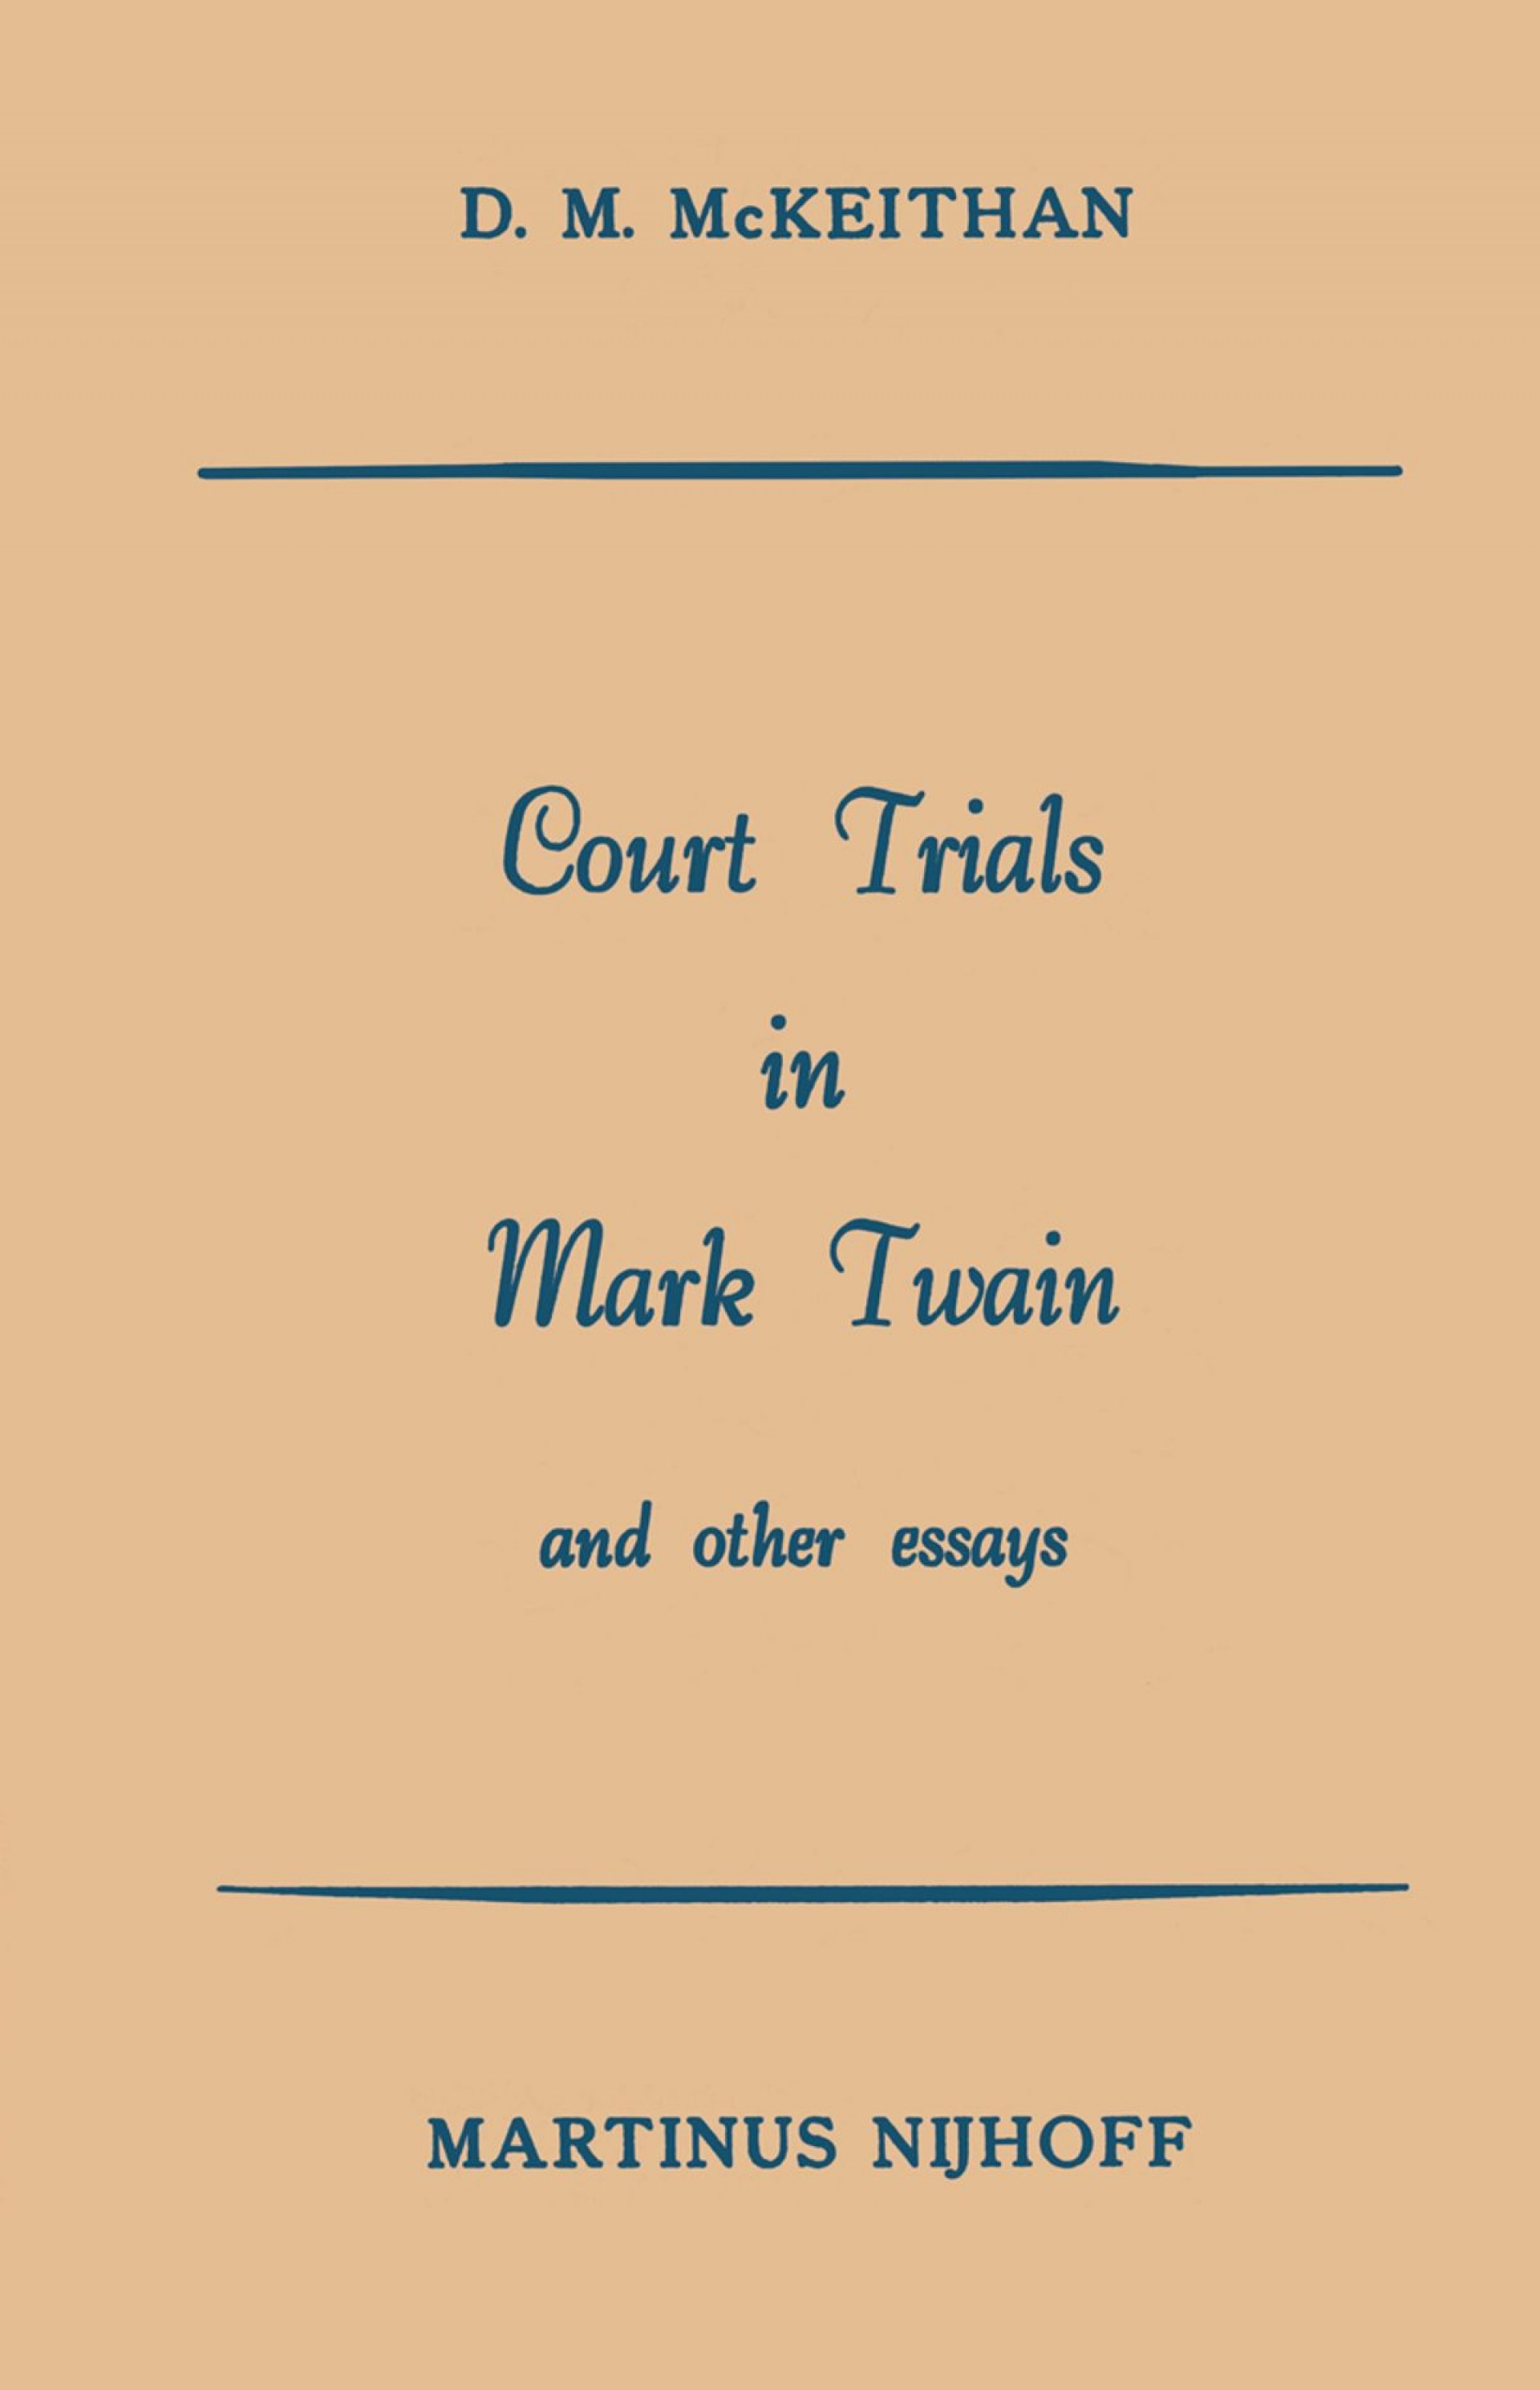 006 Court Trials In Mark Twain And Other Essays Essay Surprising Pdf On Writing Nonfiction 1920